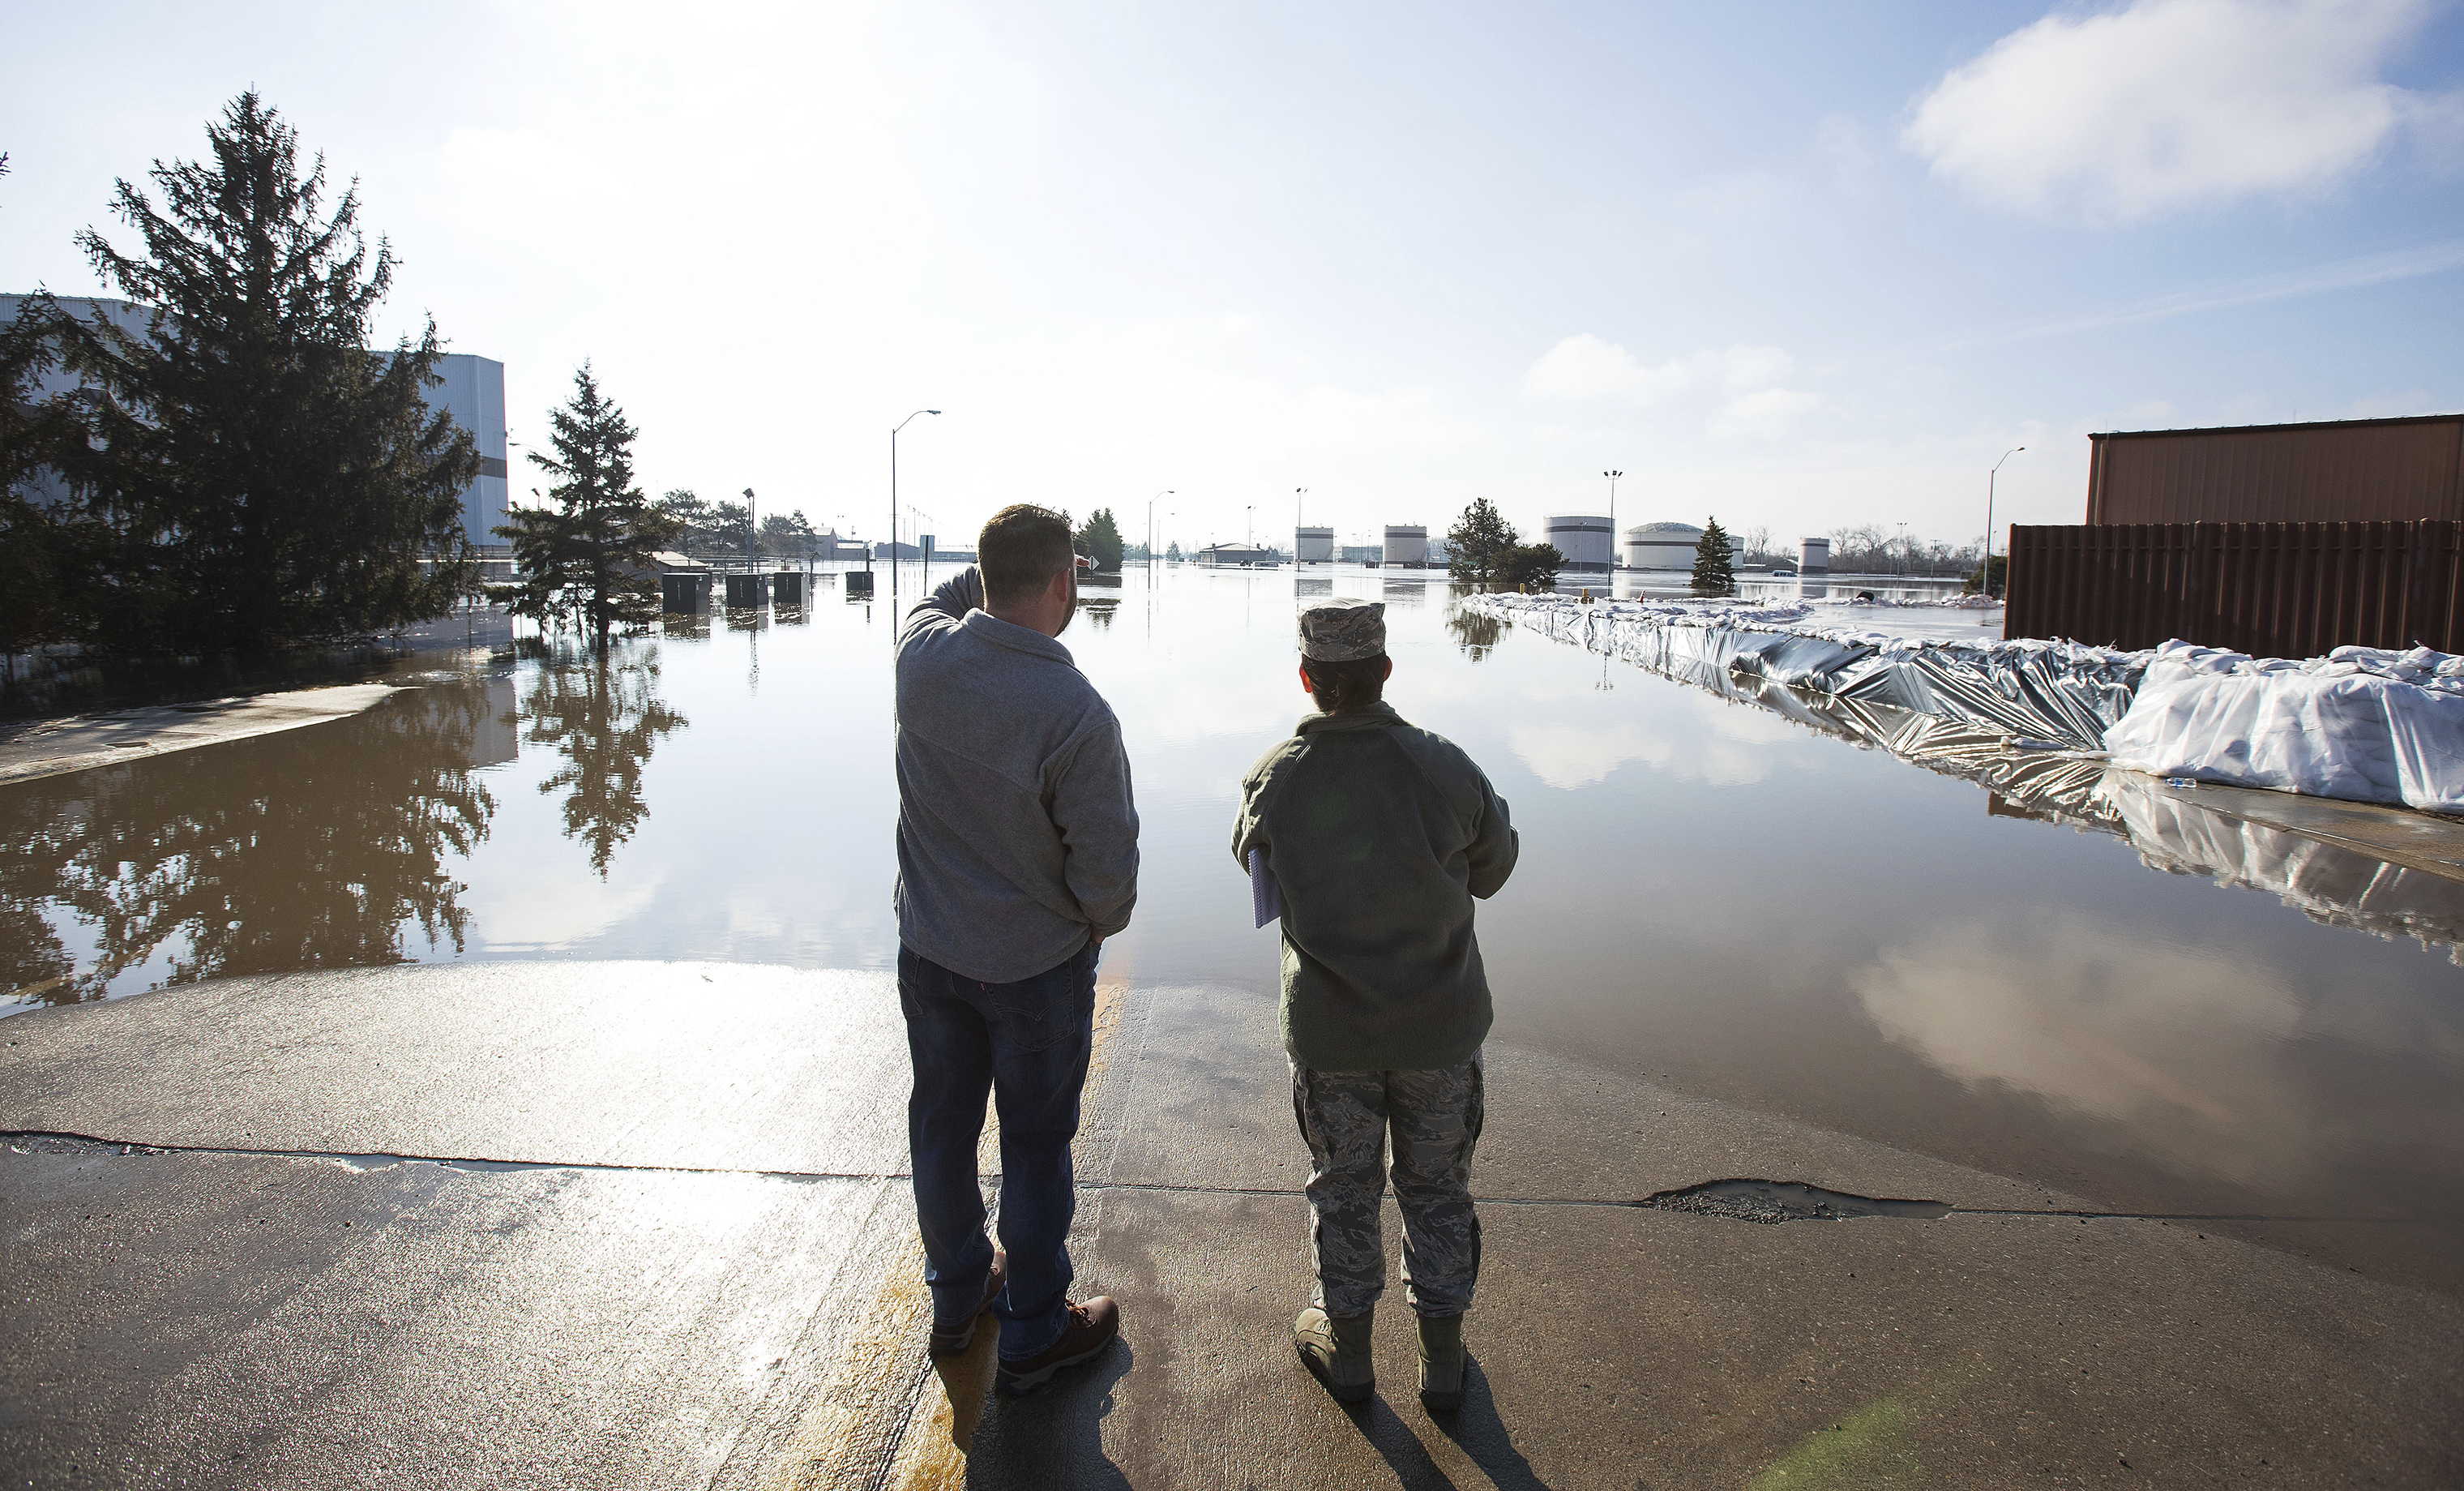 Luke Thomas and Air Force Tech Sgt. Vanessa Vidaurre look at a flooded portion of Offutt Air Force Base on March 17, 2019, in Bellevue, Nebraska.